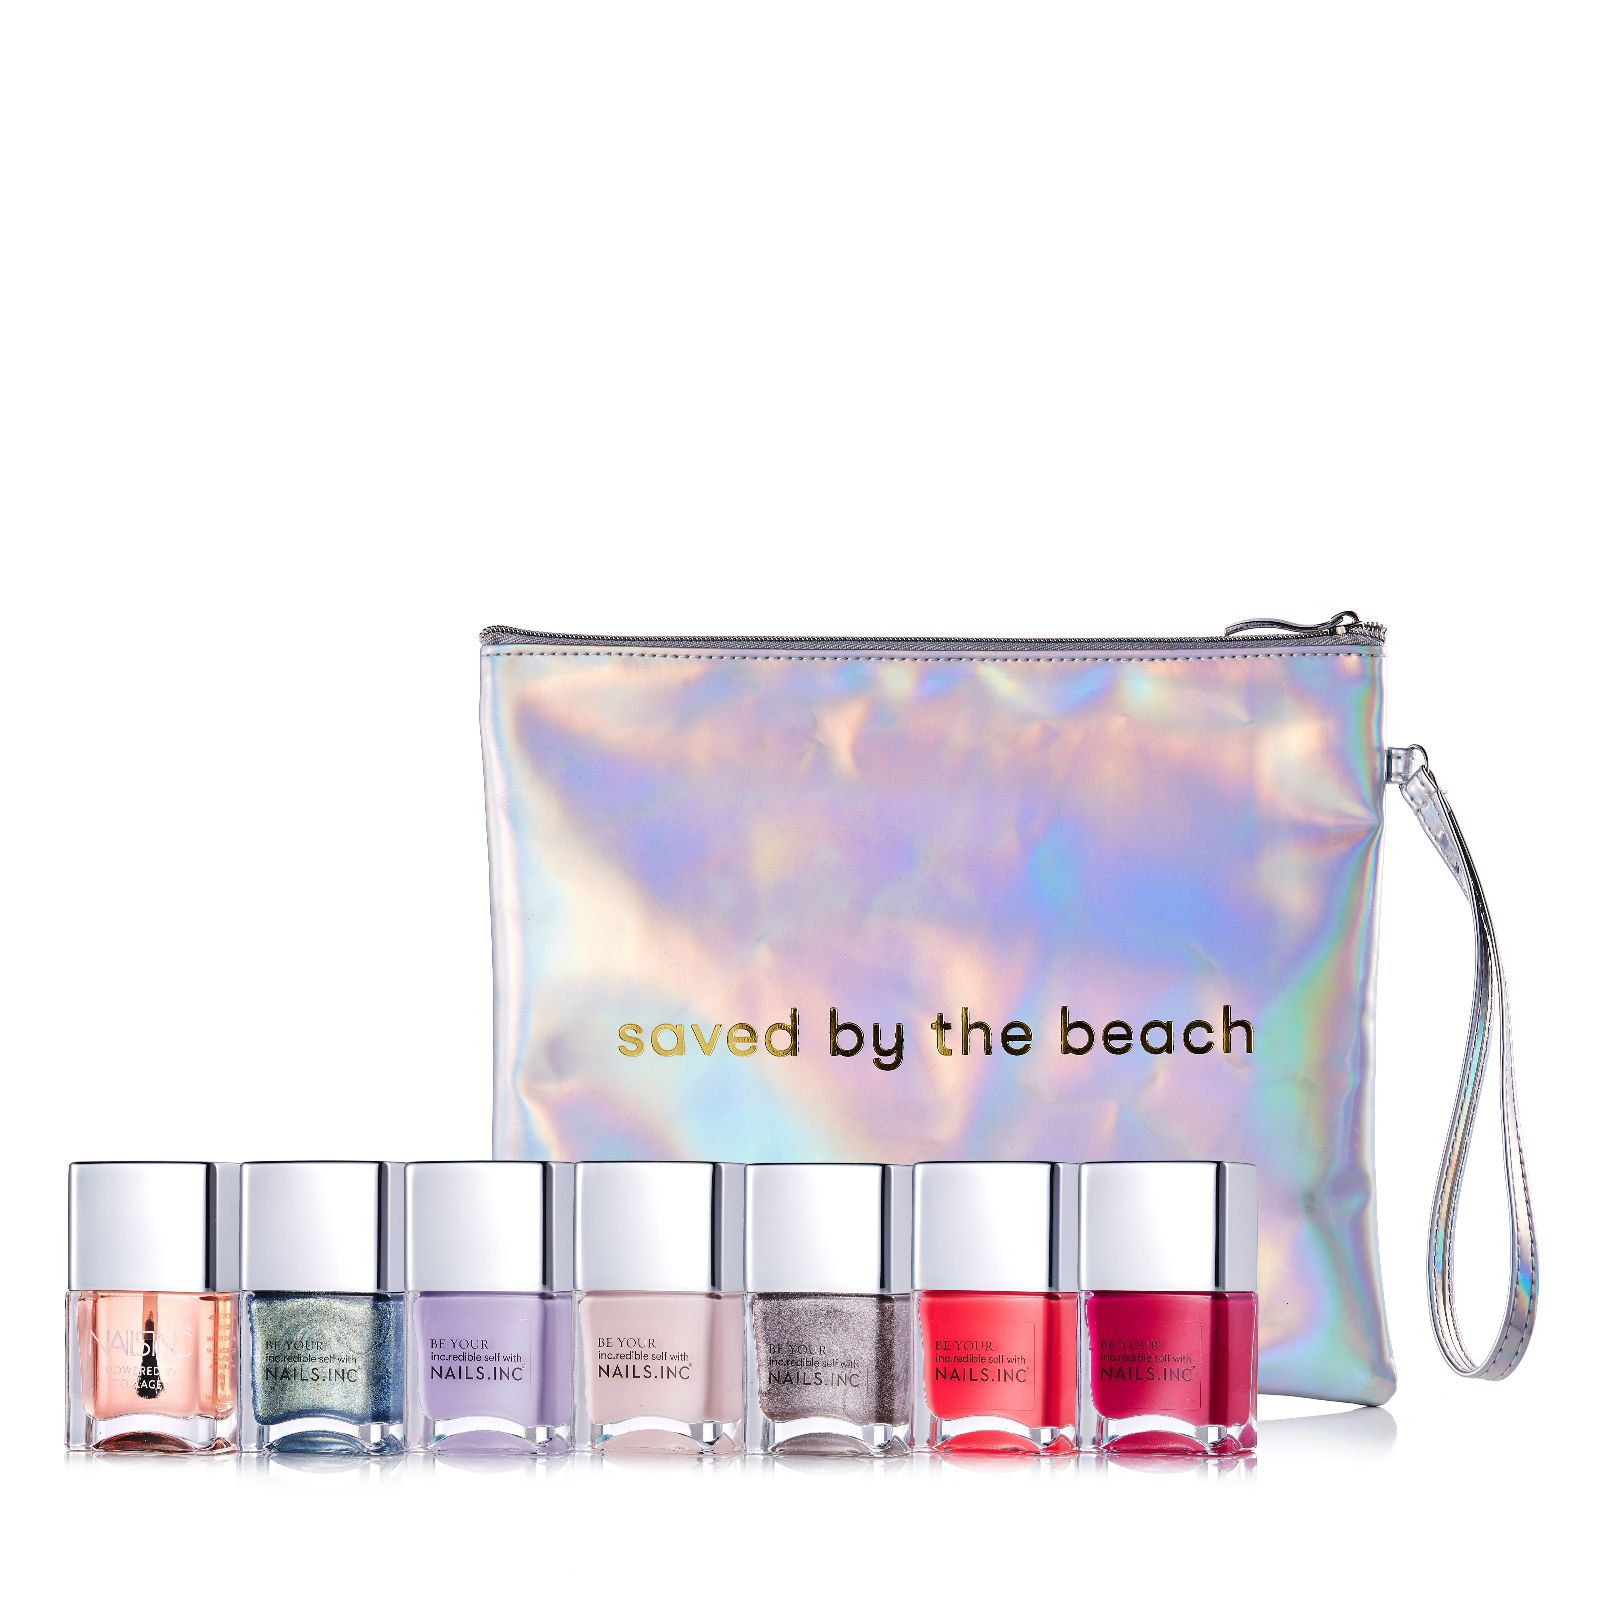 Nails Inc 7 Piece Saved By The Beach Collection & Bag - QVC UK